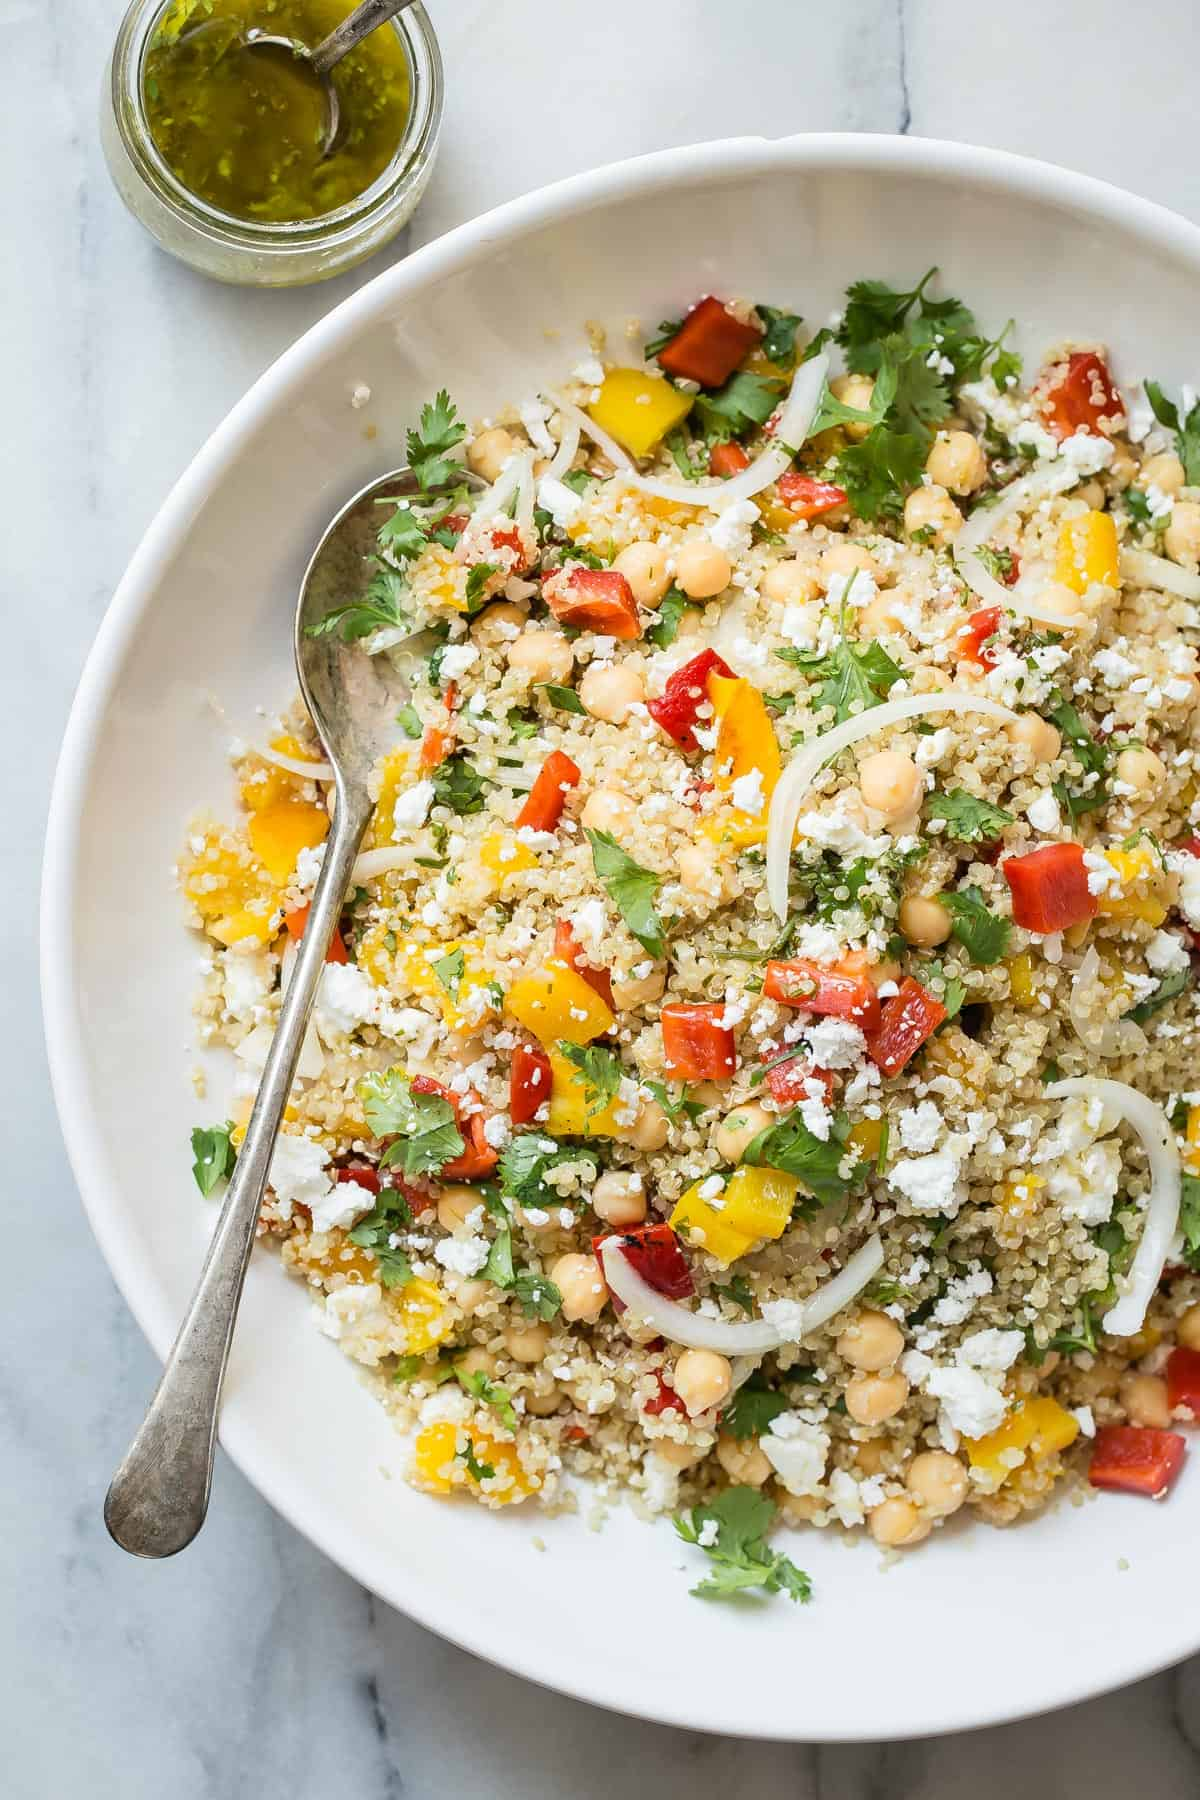 This easy to make quinoa salad is healthy and loaded with veggies too! #salads #healthy #healthyfood #quinoa #foodnessgracious